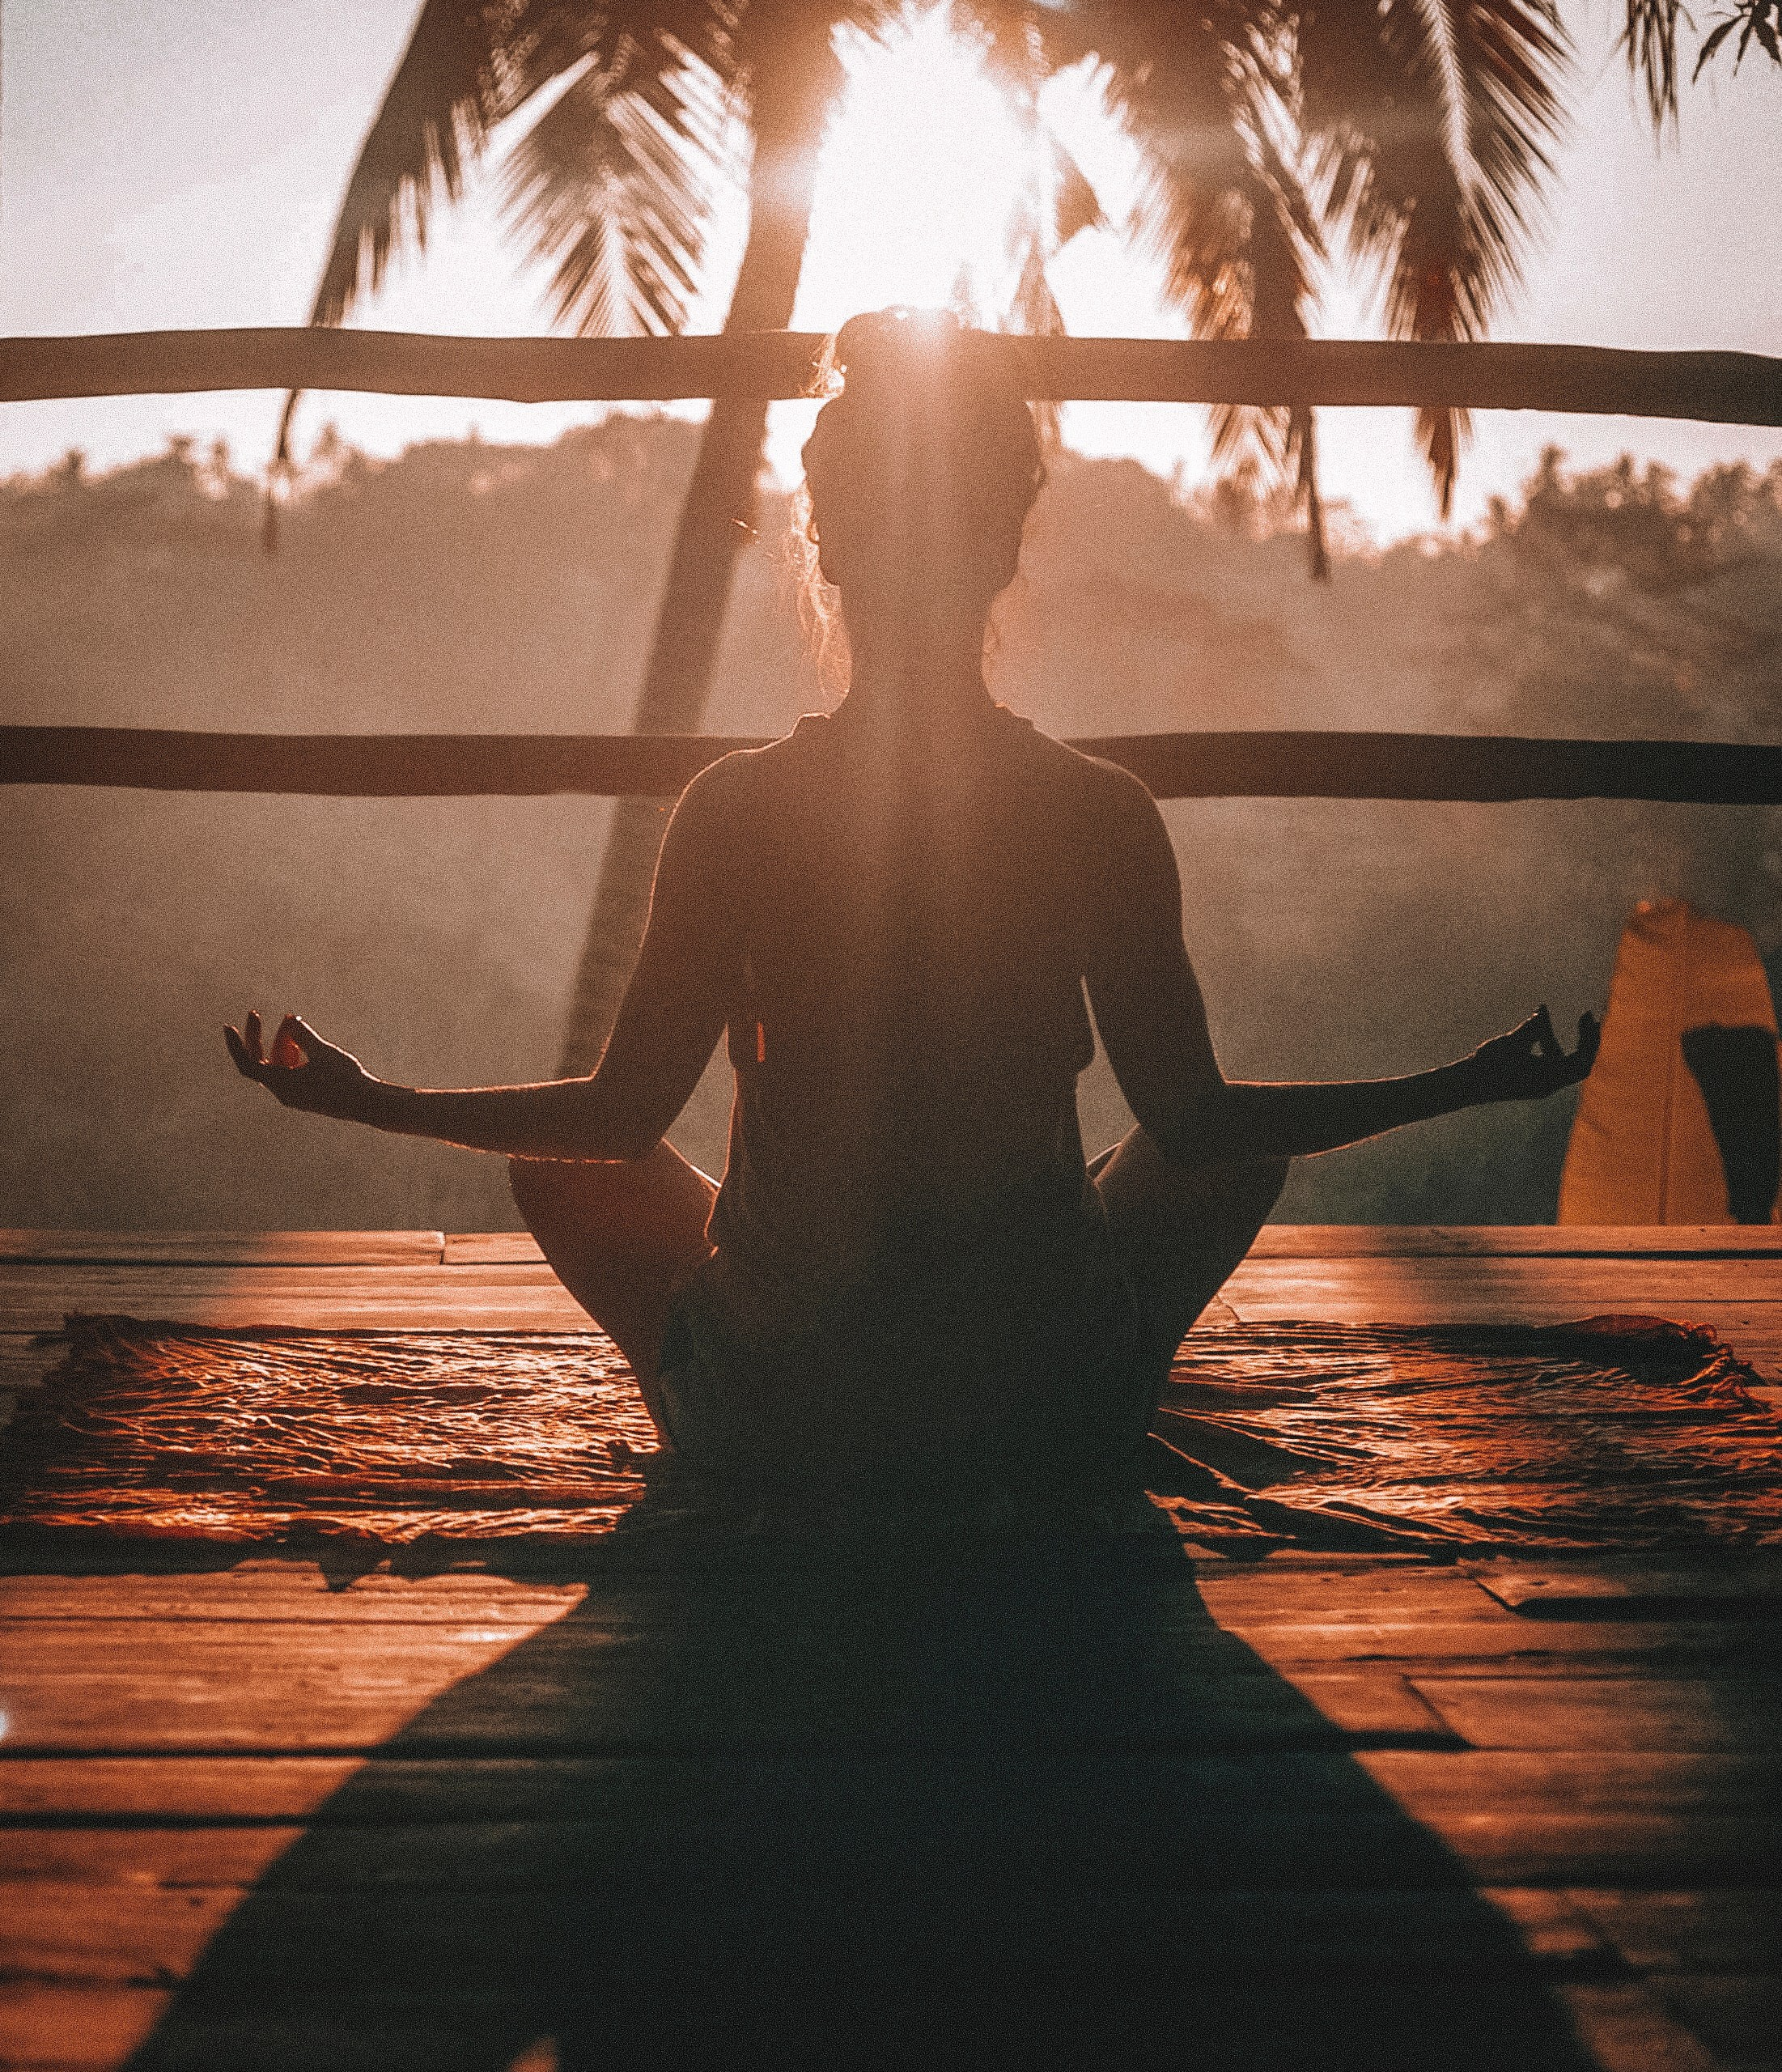 Woman meditates (or does yoga) before a sunrise/sunset in a tropical location.